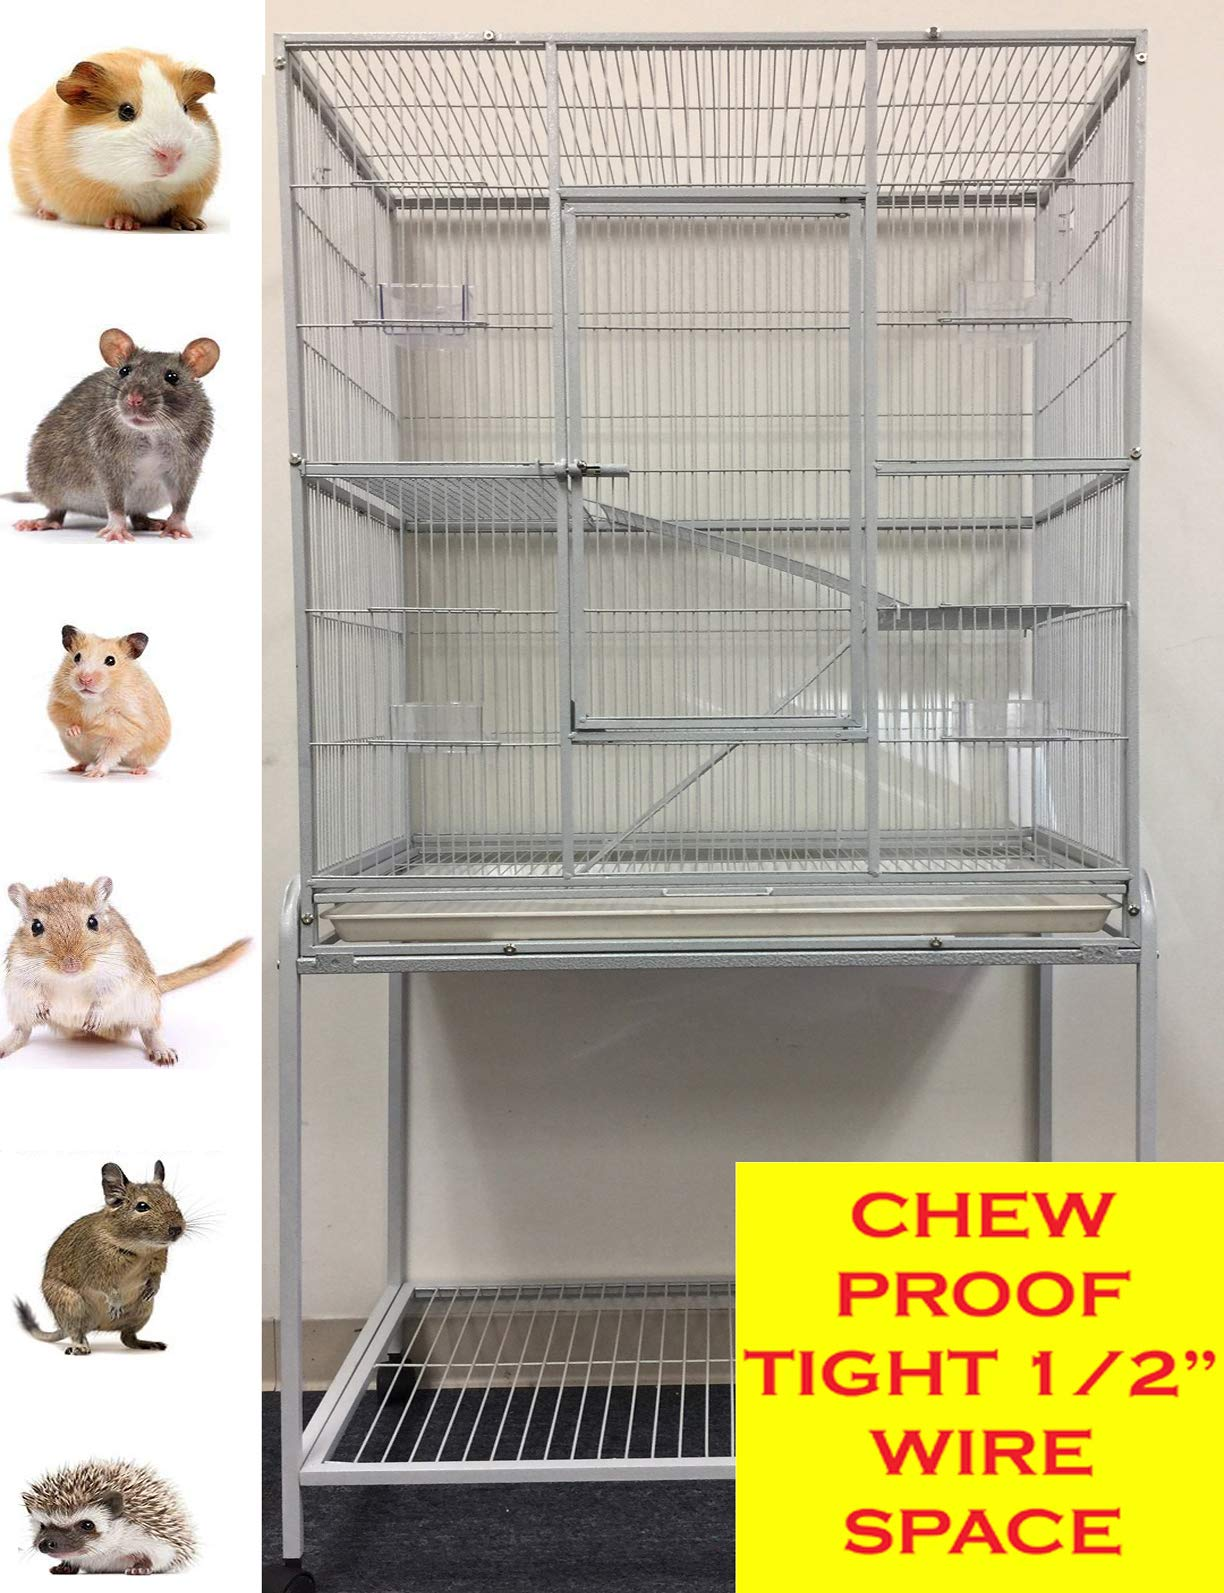 Mcage New Large Wrought Iron 4 Levels Ferret Chinchilla Sugar Glider Cage 30-Inch by 18-Inch by 63-Inch with Stand on Wheels by Mcage